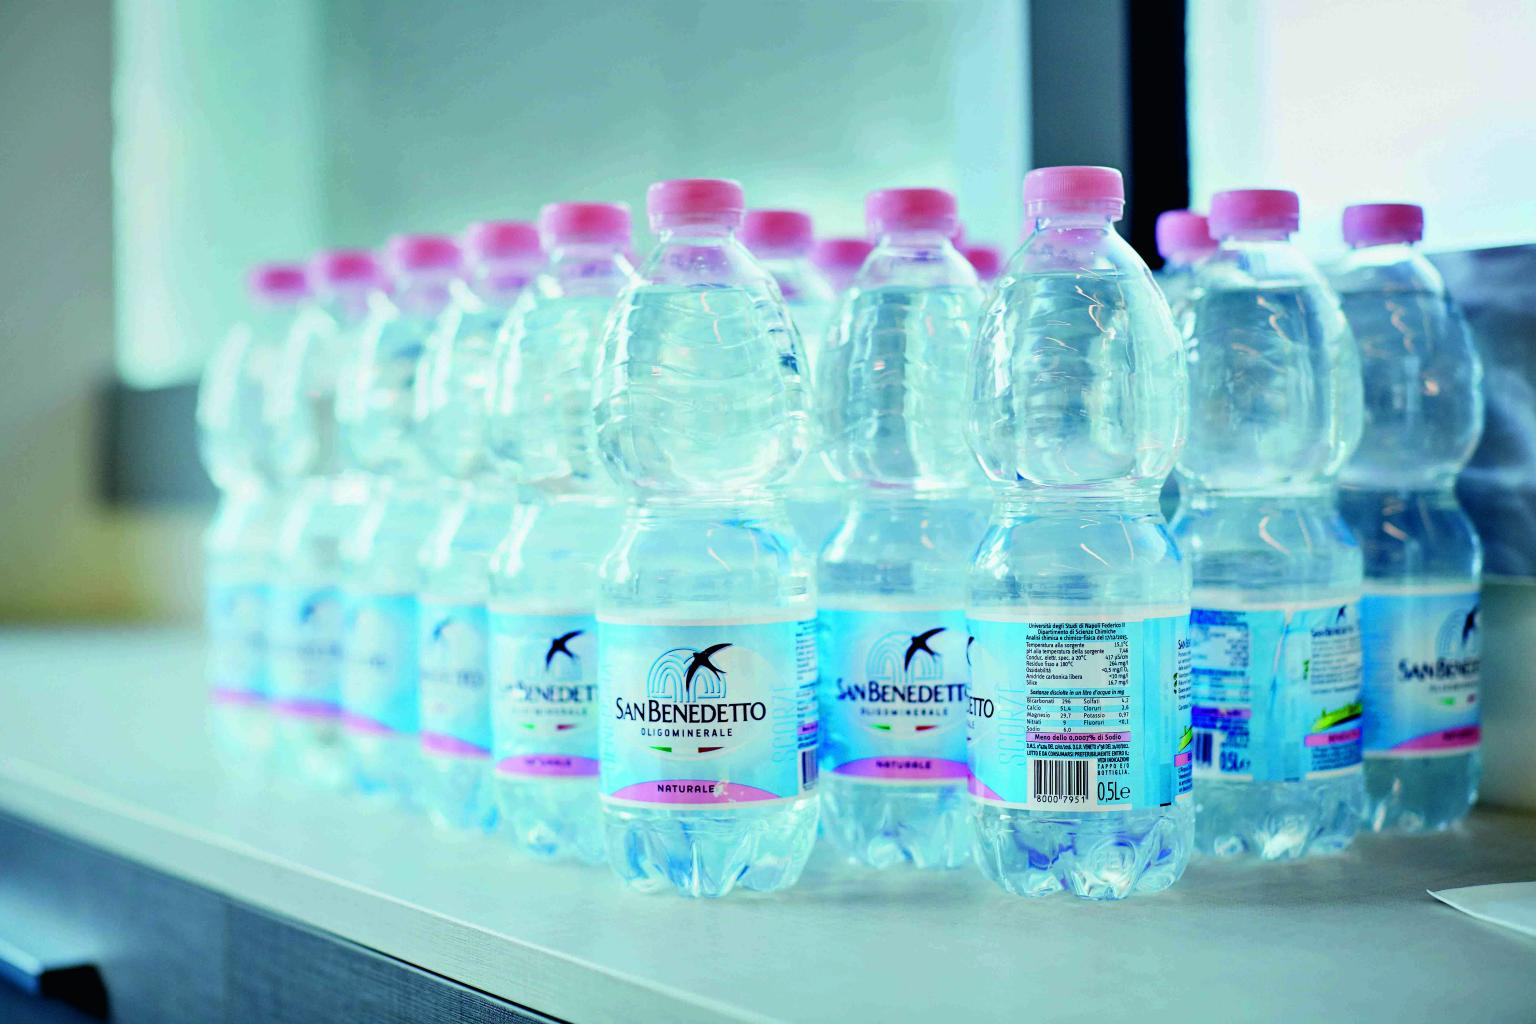 20 million bottles are filled each day using 44 systems across San Benedetto's 11 production facilities